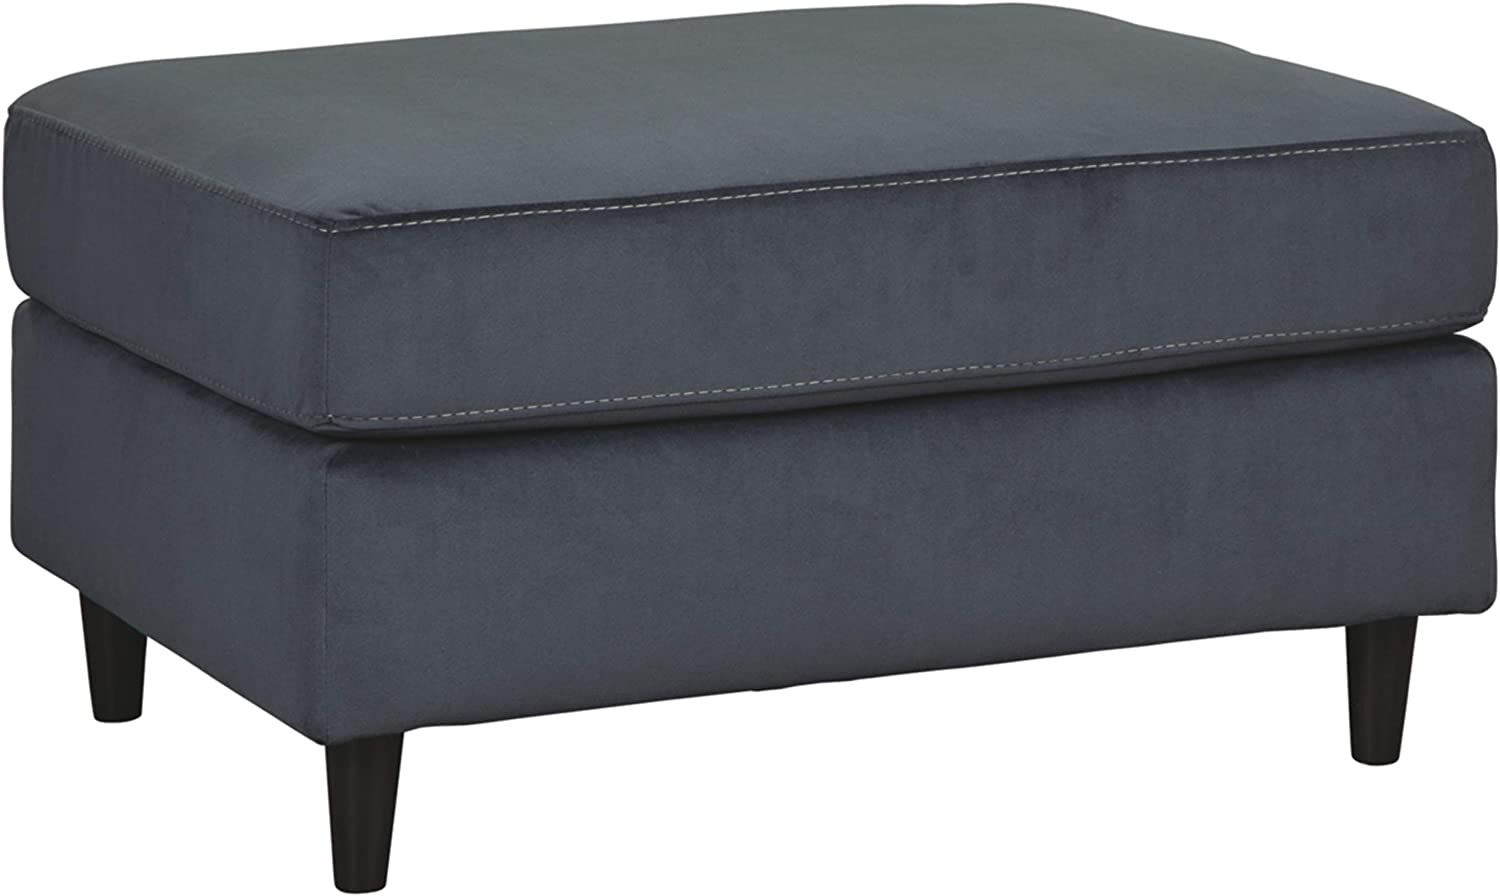 Signature Design by Ashley - Kennewick Contemporary Velvet Ottoman, Shadow